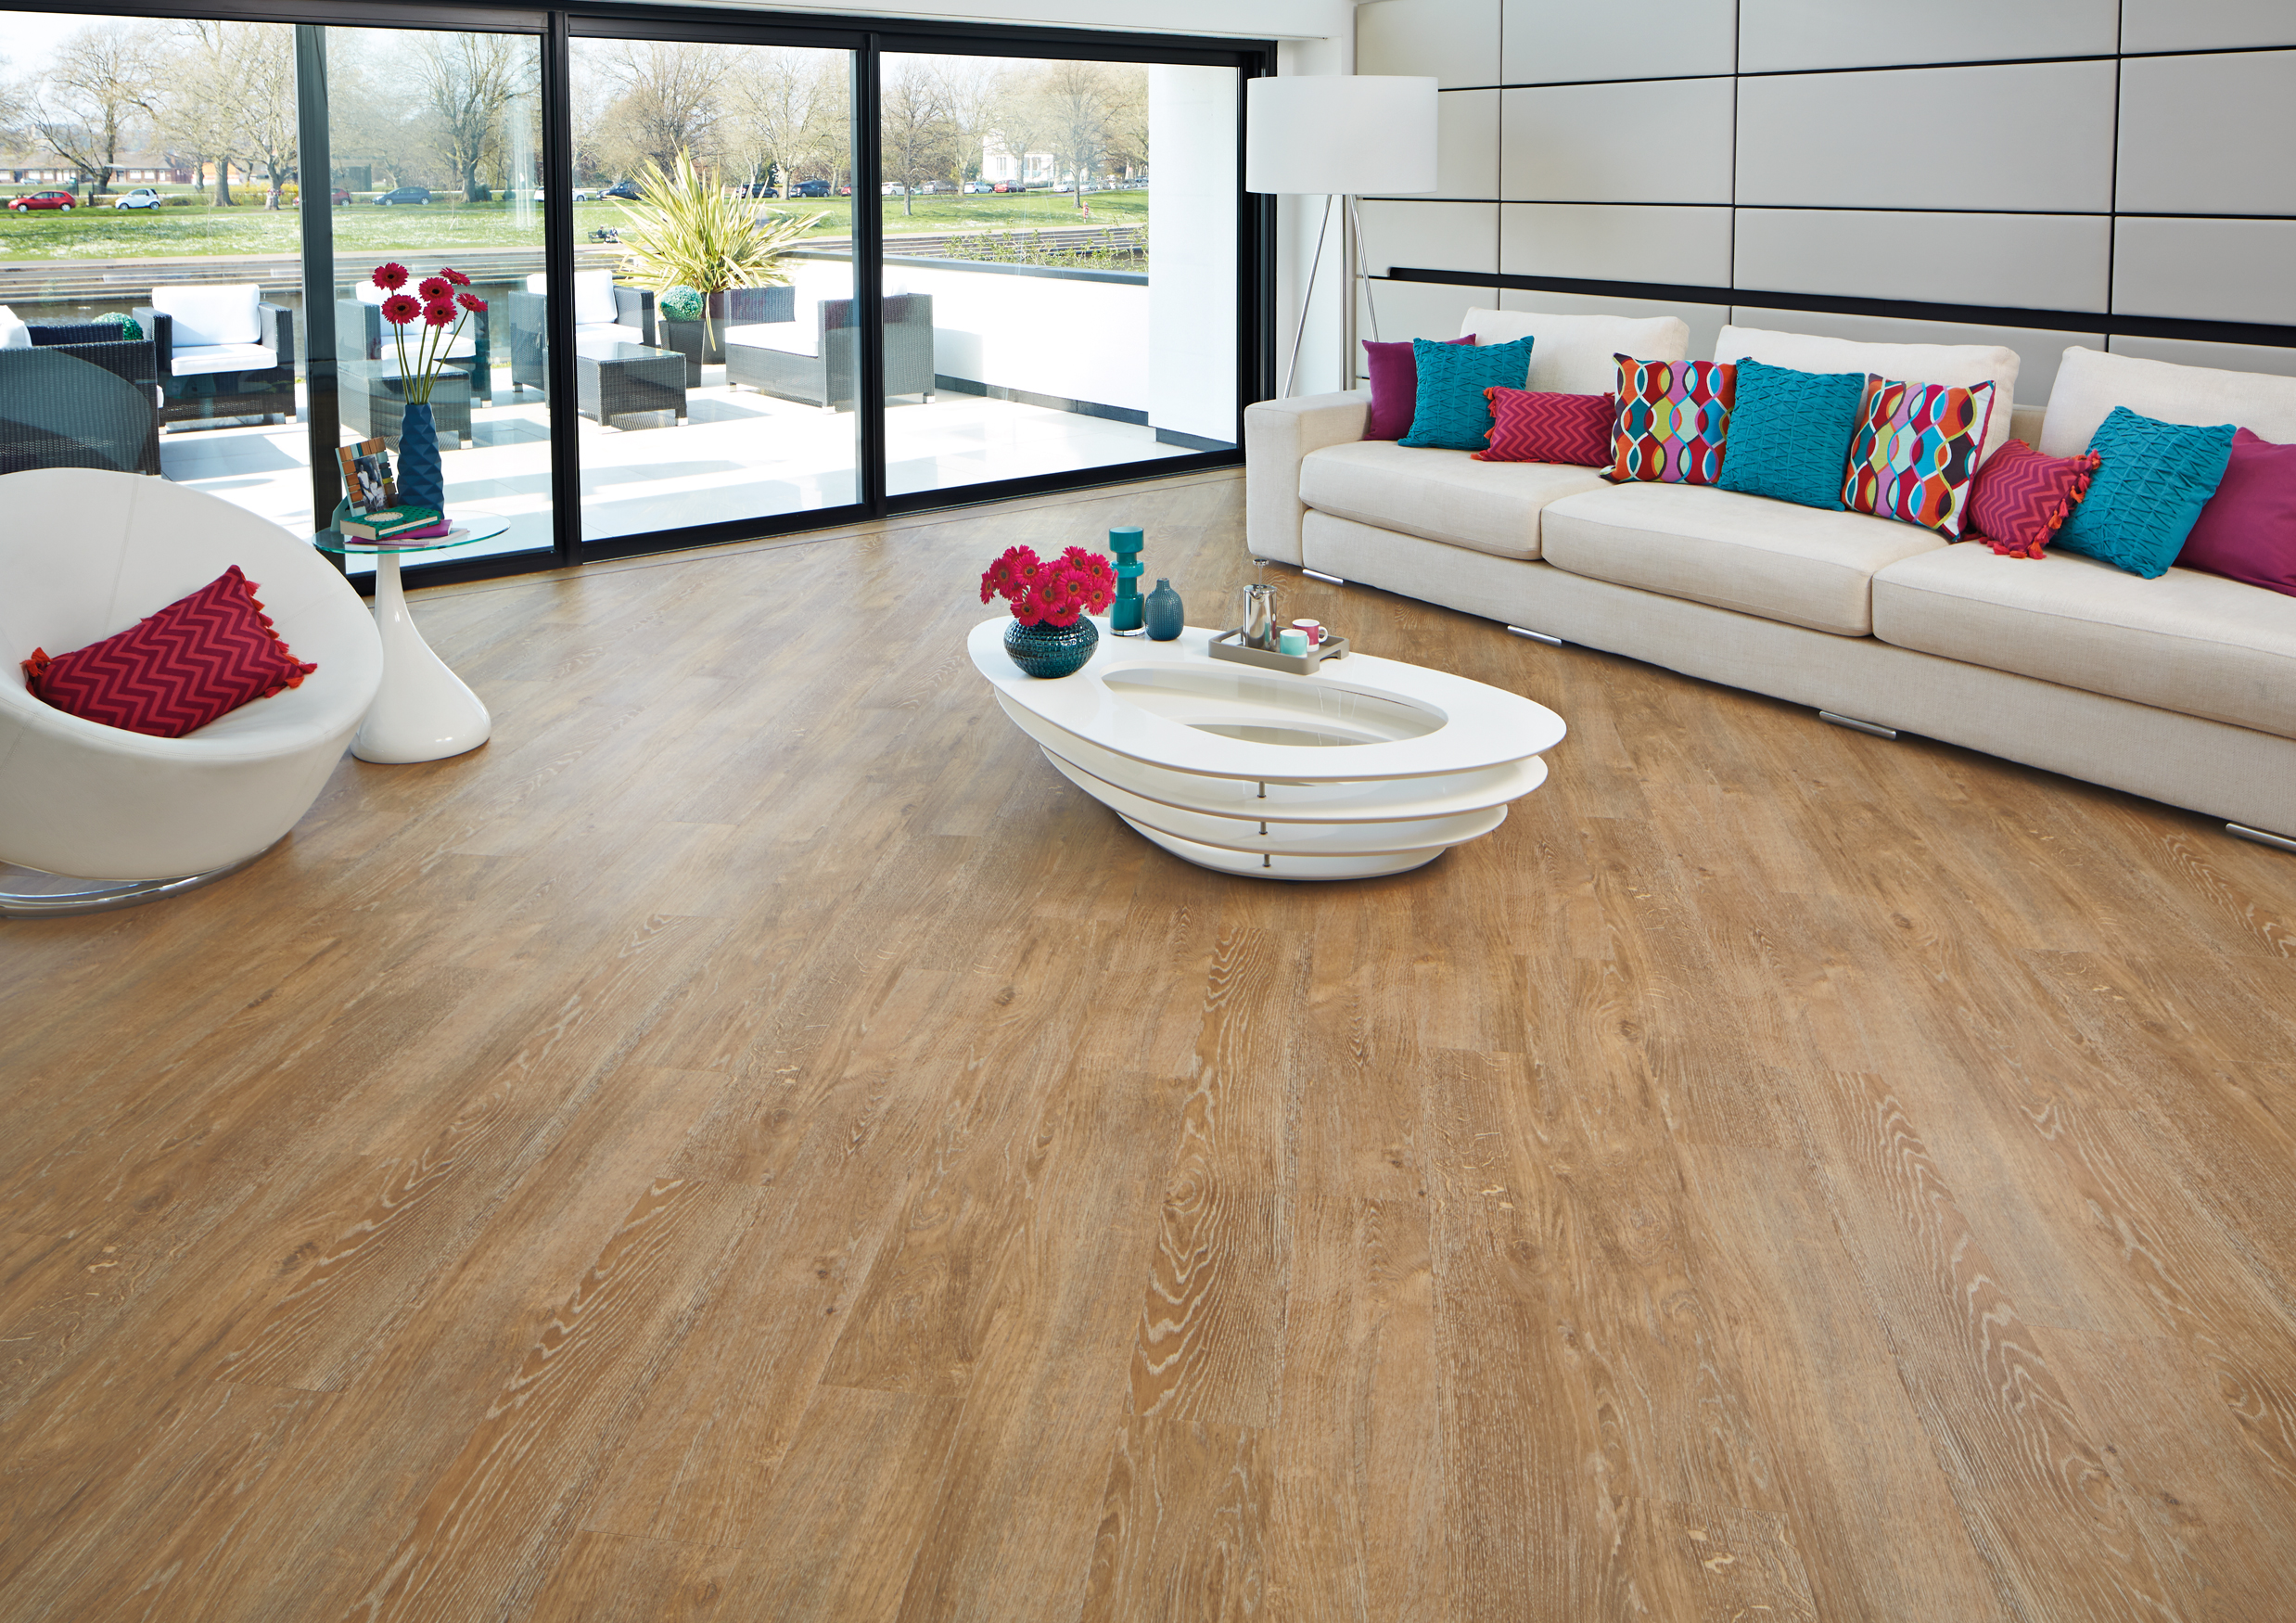 touchwood services tile with by treble border pin knight karndean floor chalk charcoal flooring